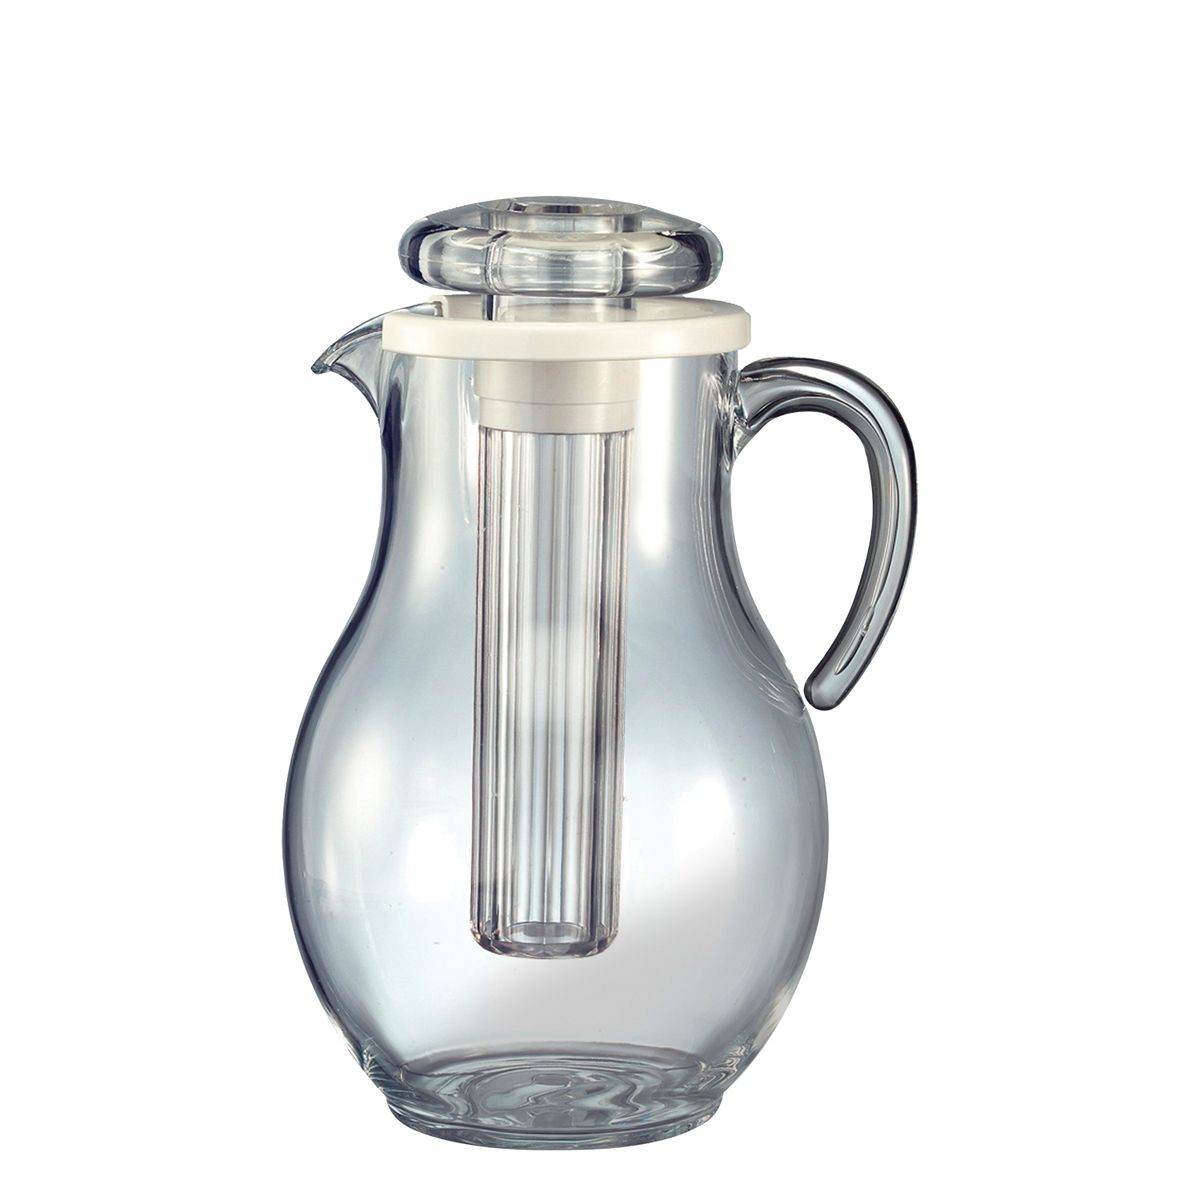 Service Ideas AWP33SB Acrylic Smooth Body Ice Tube Pitcher, 3.3 Liter